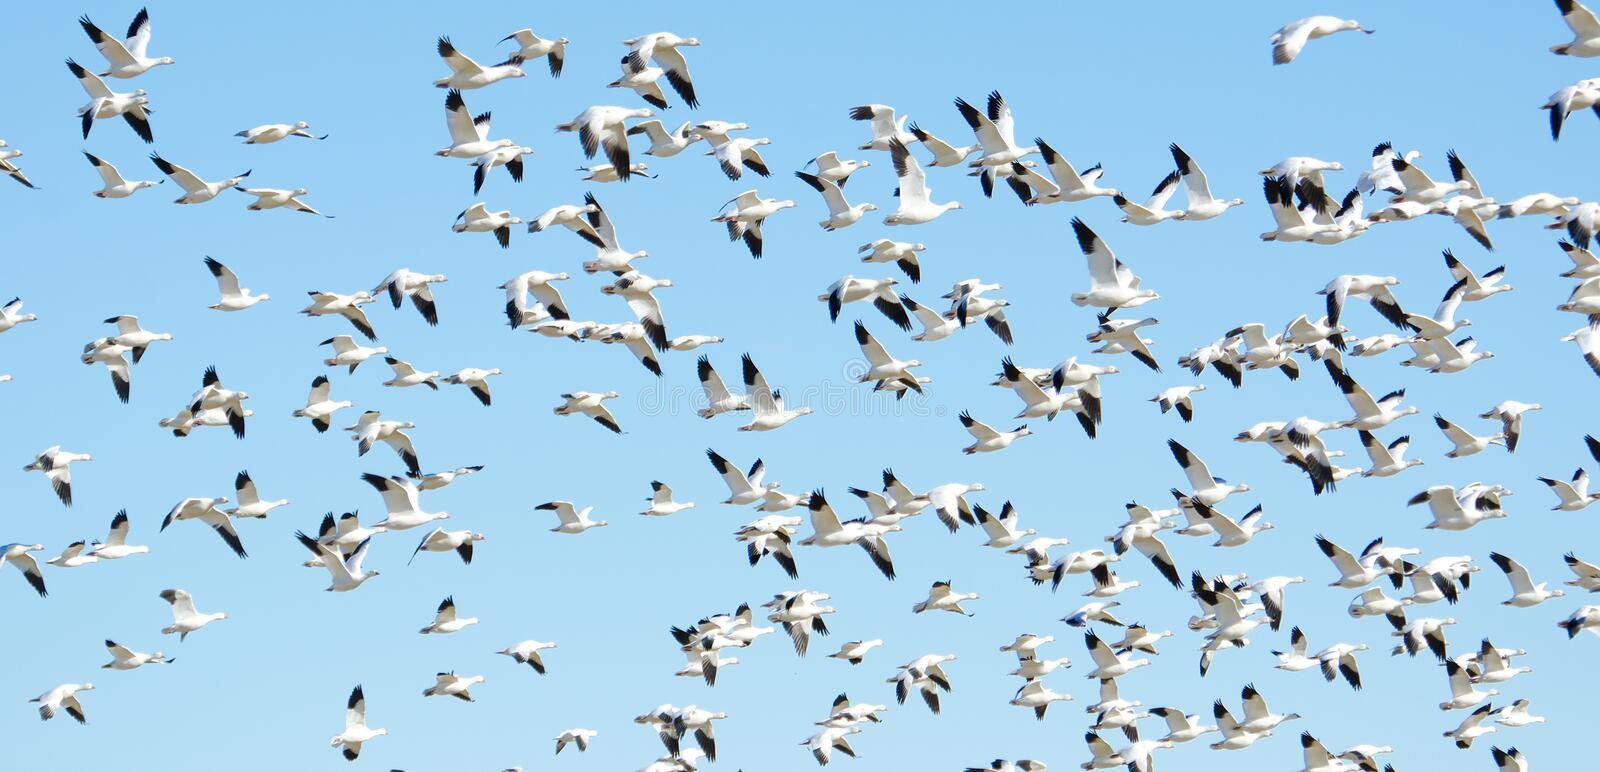 Flock of snow geese in flight, Migration royalty free stock image